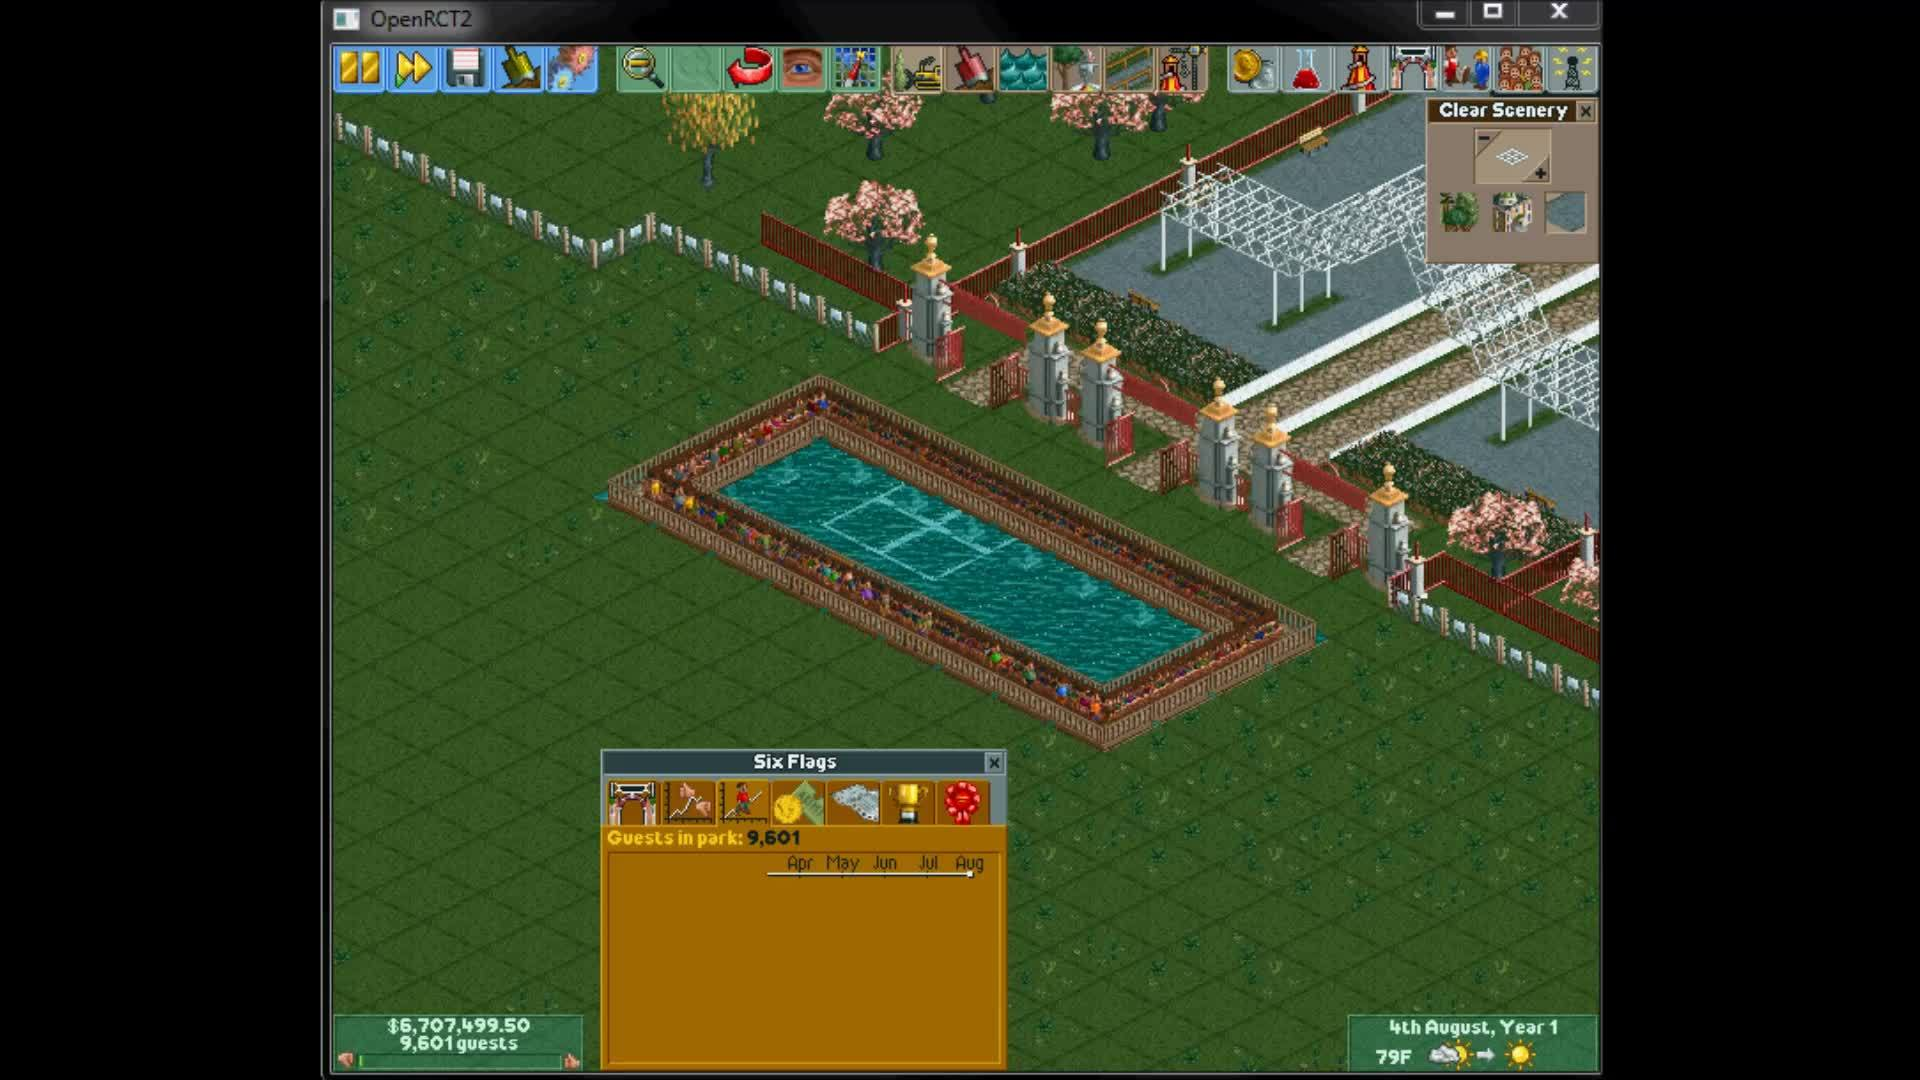 rct, rollercoastertycoon, Roller Coaster Tycoon 2 Genocide GIFs